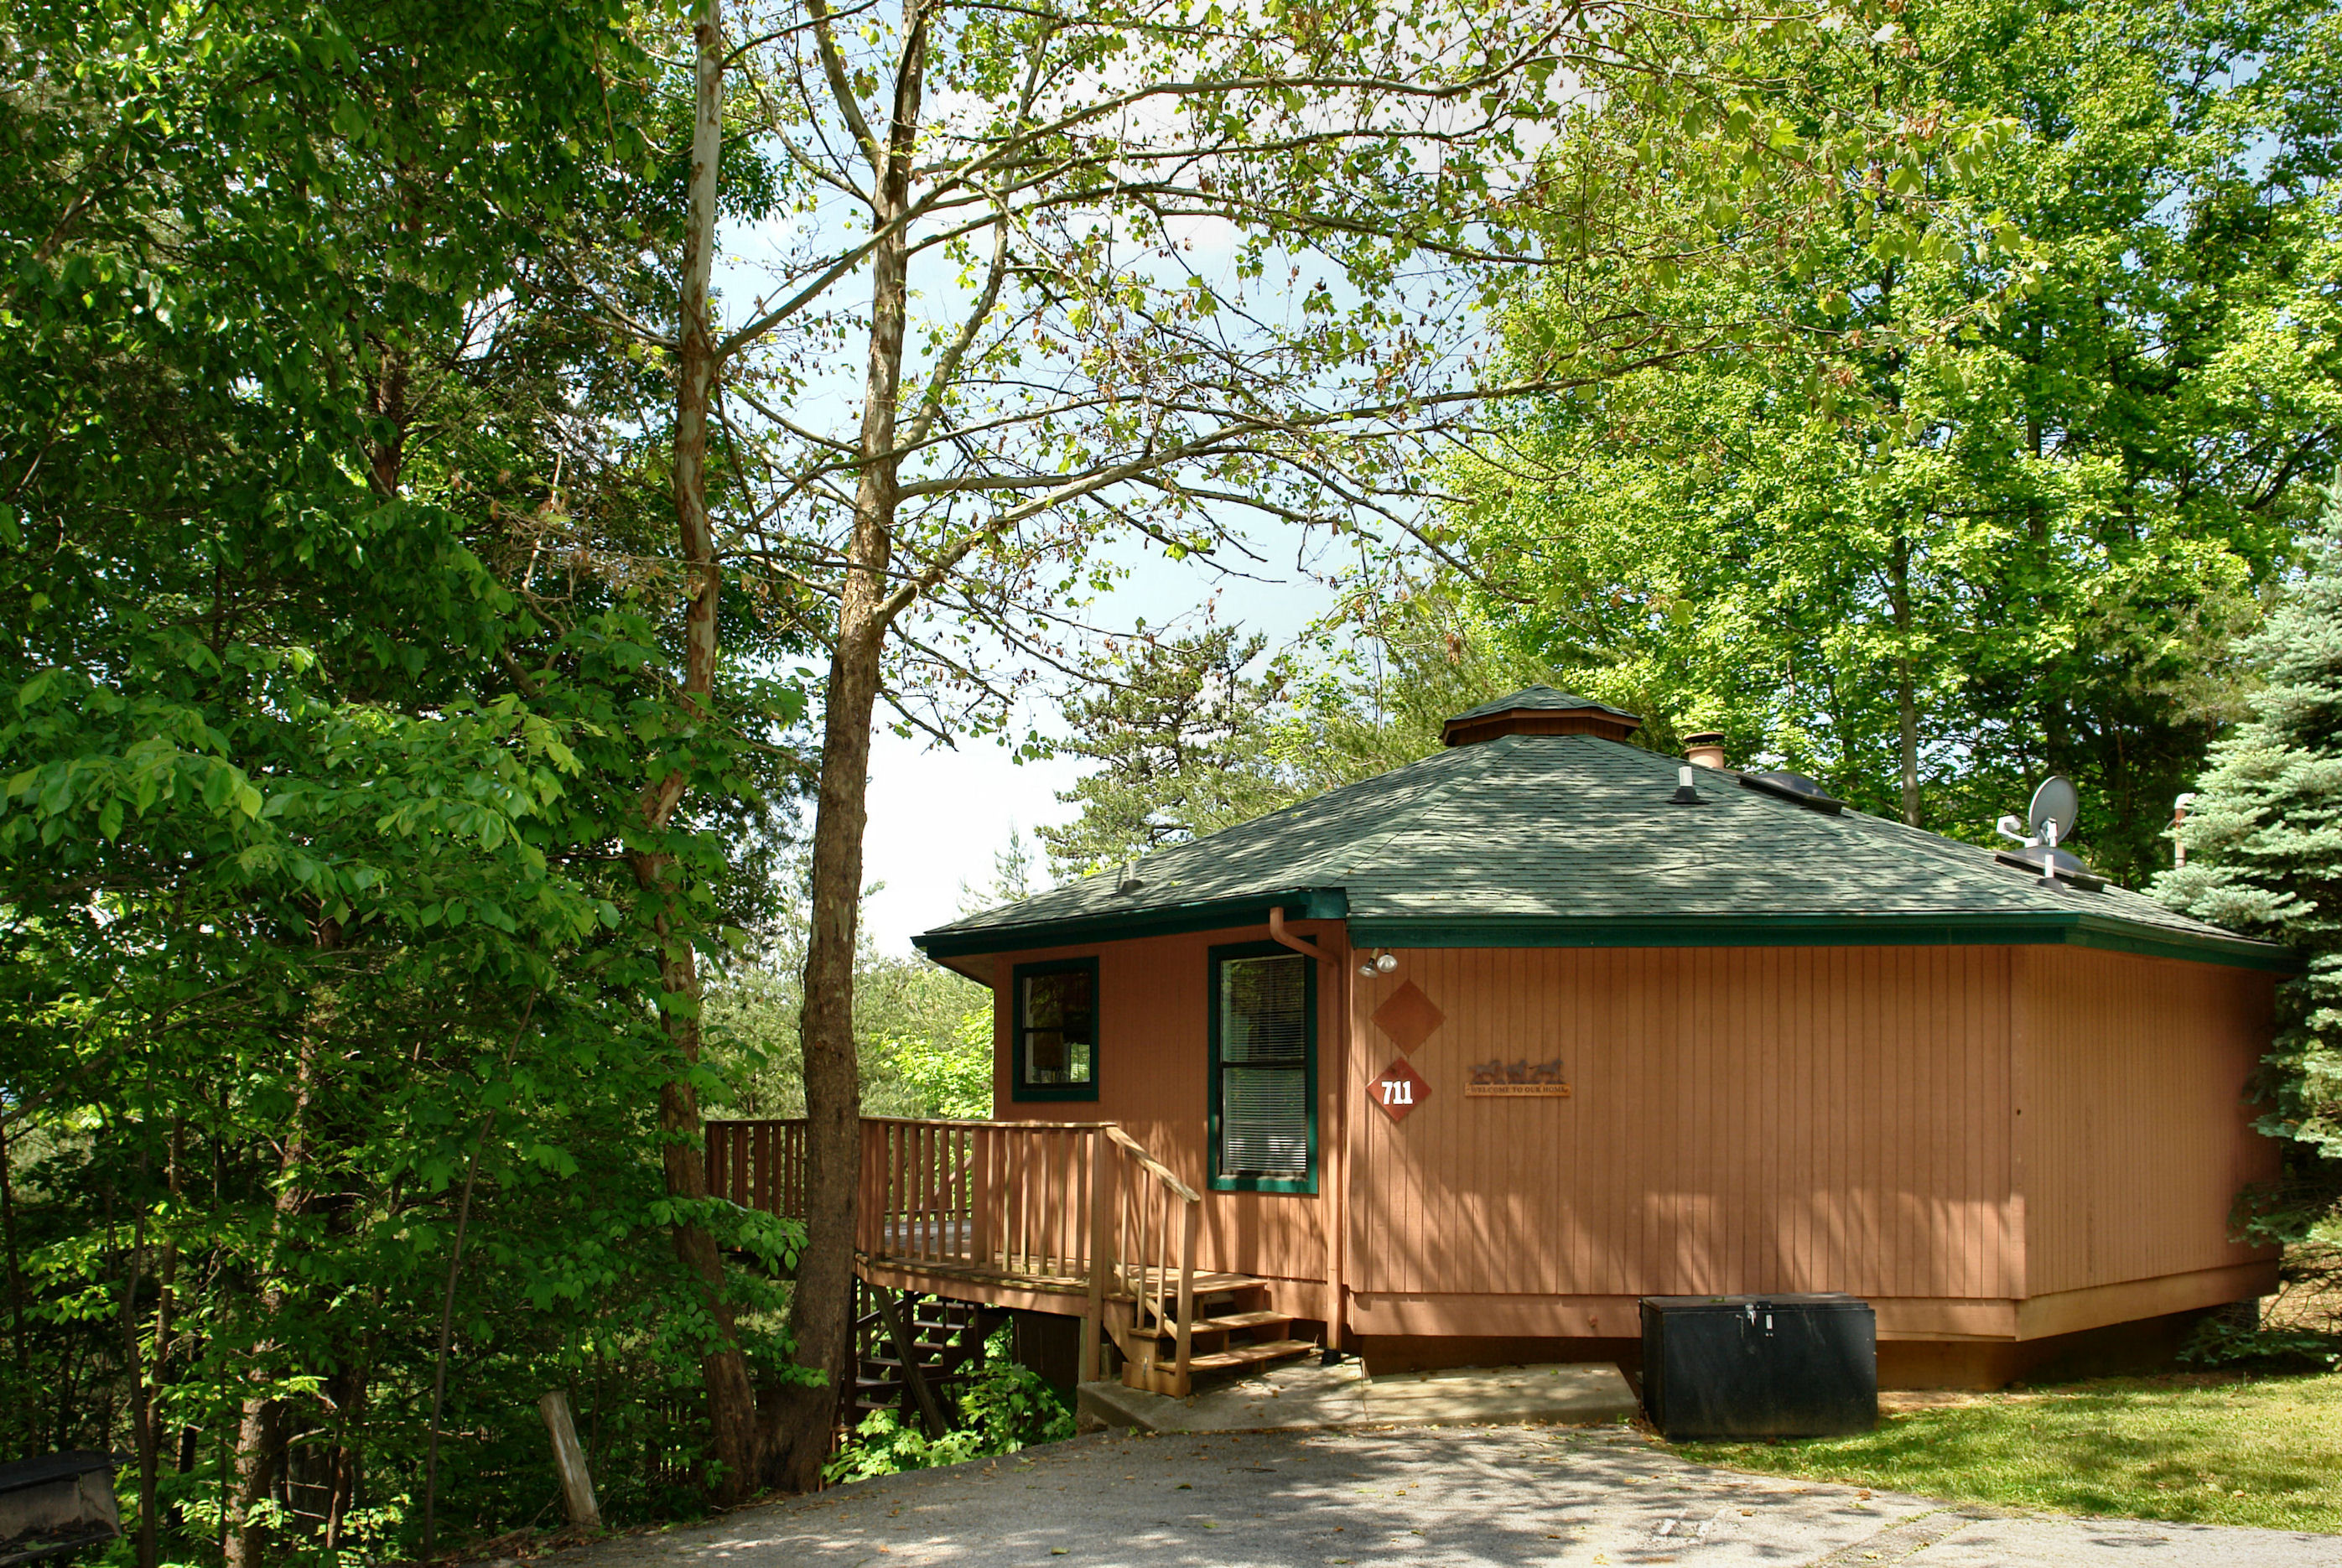 cabin bear game vacation redawning cabins amp minute in rentals property hot tub rental lake big room last